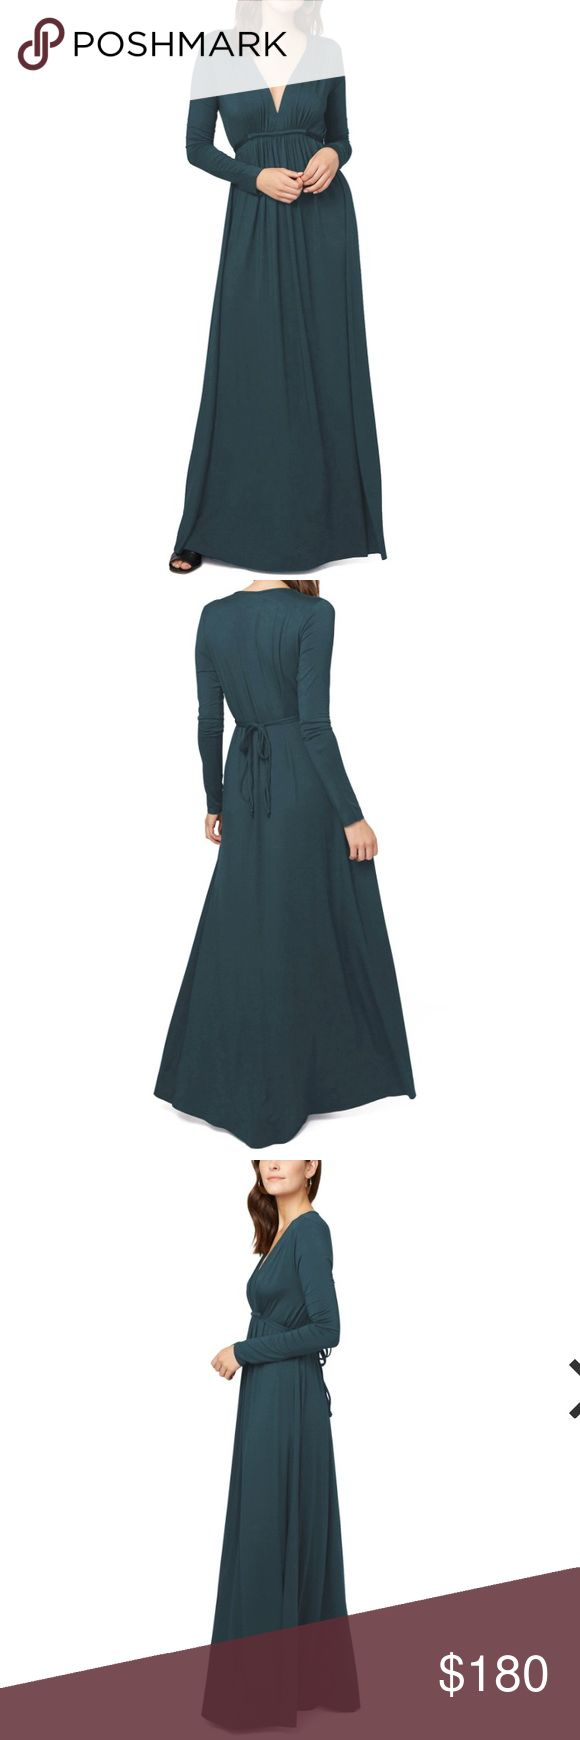 NWT Rachel Pally Long Caftan Elm M This long sleeve maxi dress is based off of Rachel Pally's all-time best seller. Featuring a stretchy, heavyweight modal jersey, it softly embraces your curves and offers a forgiving yet feminine drape.  Details:  Modal jersey - 92% modal, 8% spandex. Measures 68 in. from shoulder - left long for customized hemming. Made in the USA. Originally $242 - this item is new with tags. Rachel Pally Dresses Maxi